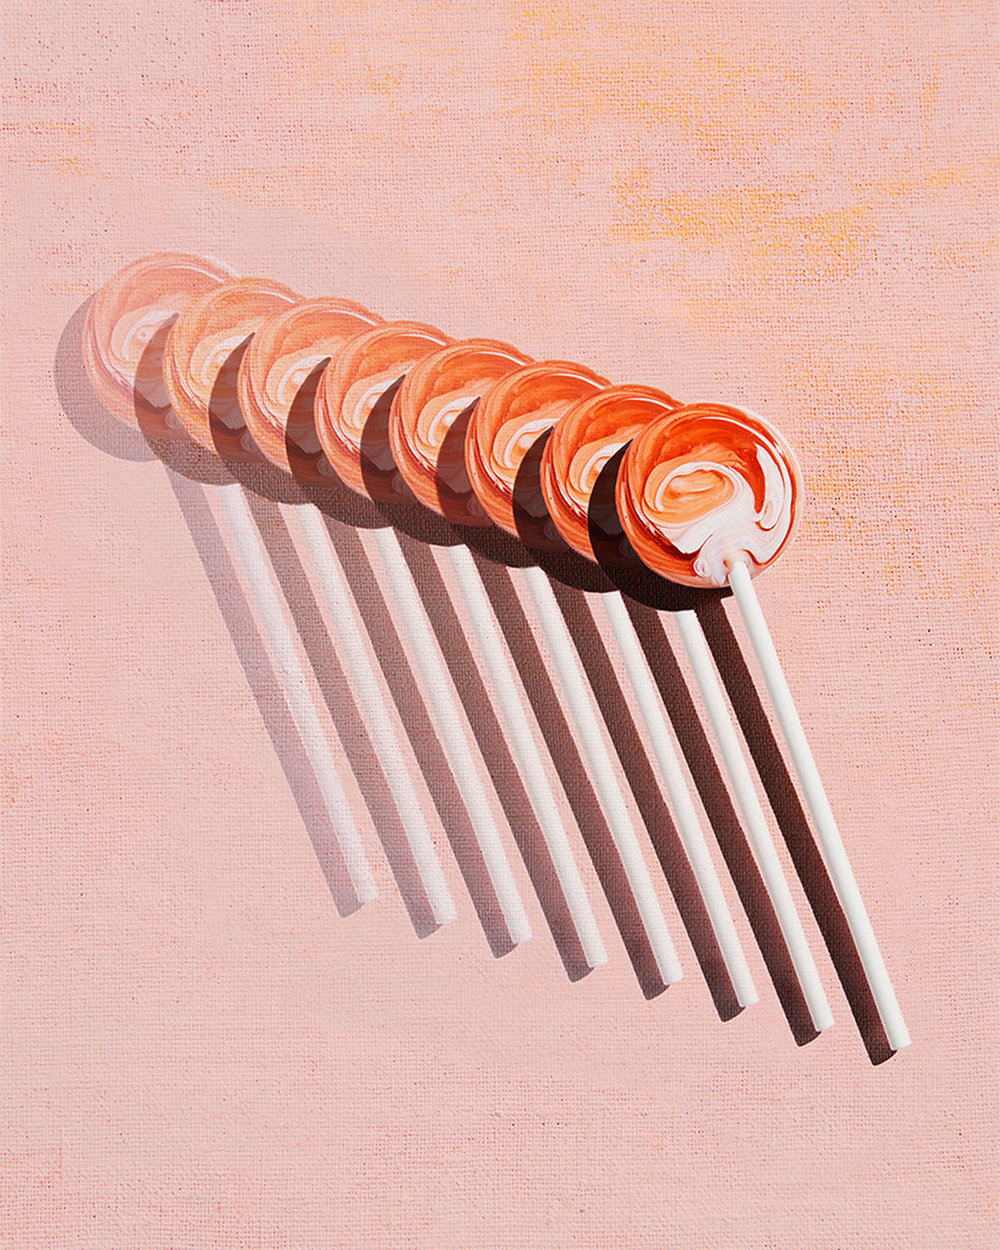 Creamsicle swirl lollipop